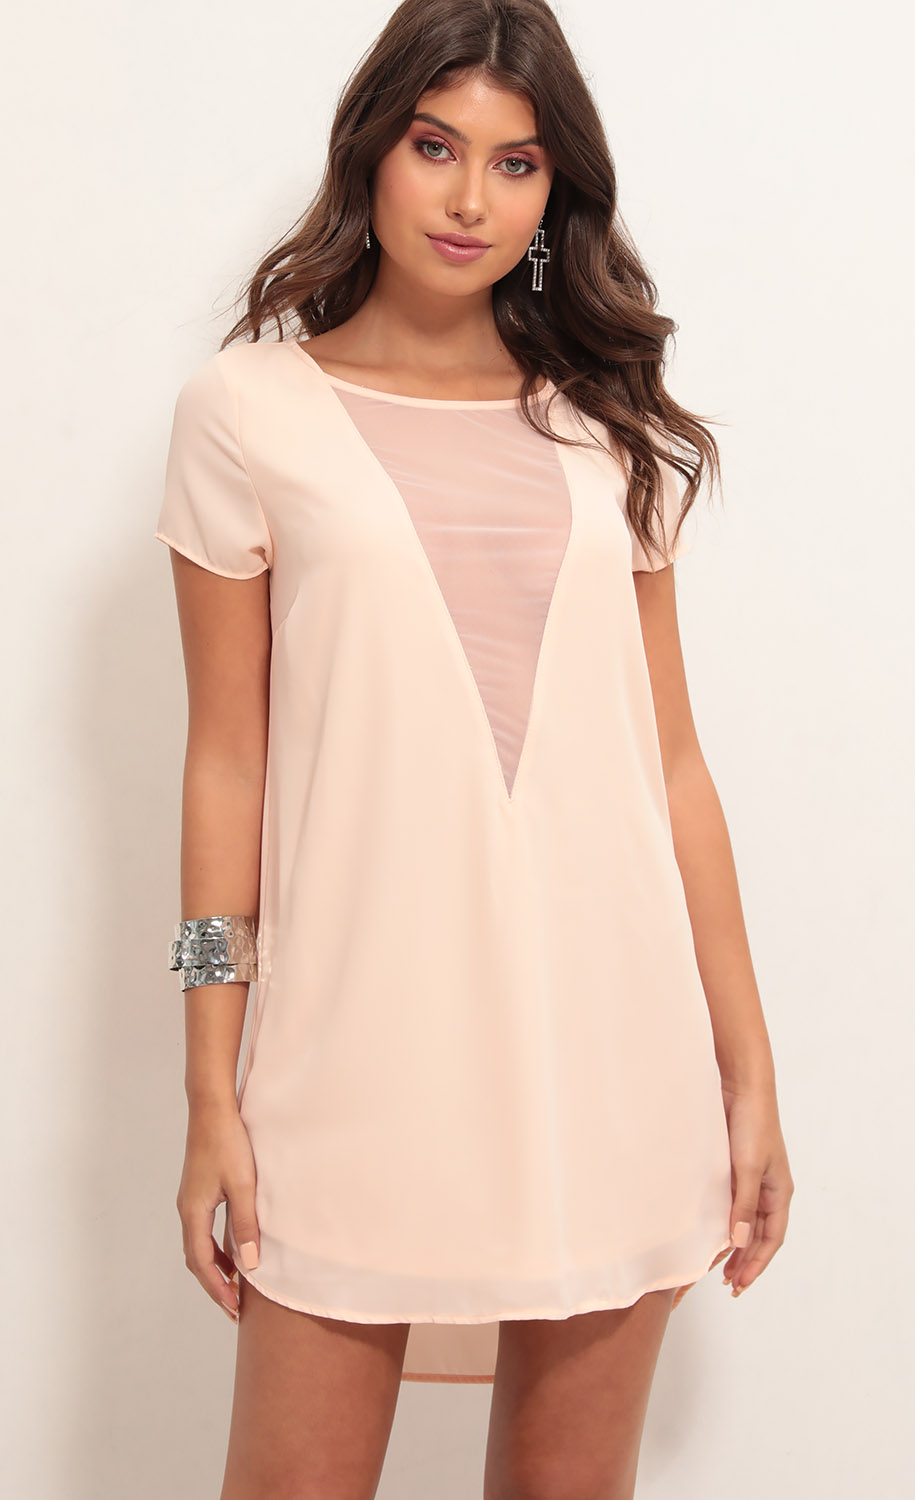 Chanel Plunge Shift Dress in Light Coral